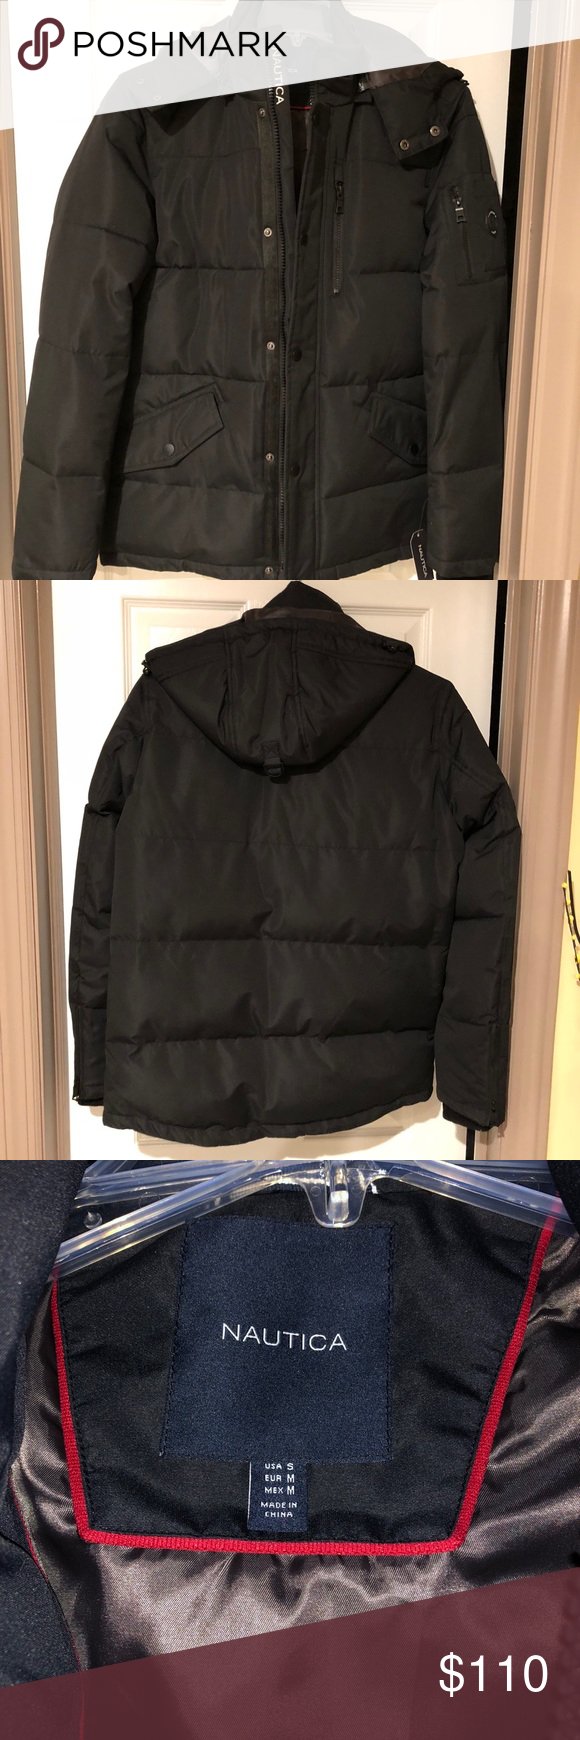 Men S Nautica Puffer Jacket W Detachable Hood Brand New With Tags This Jacket Is Sure To Keep You Warm This Winter It Clothes Design Detachable Hood Clothes [ 1740 x 580 Pixel ]